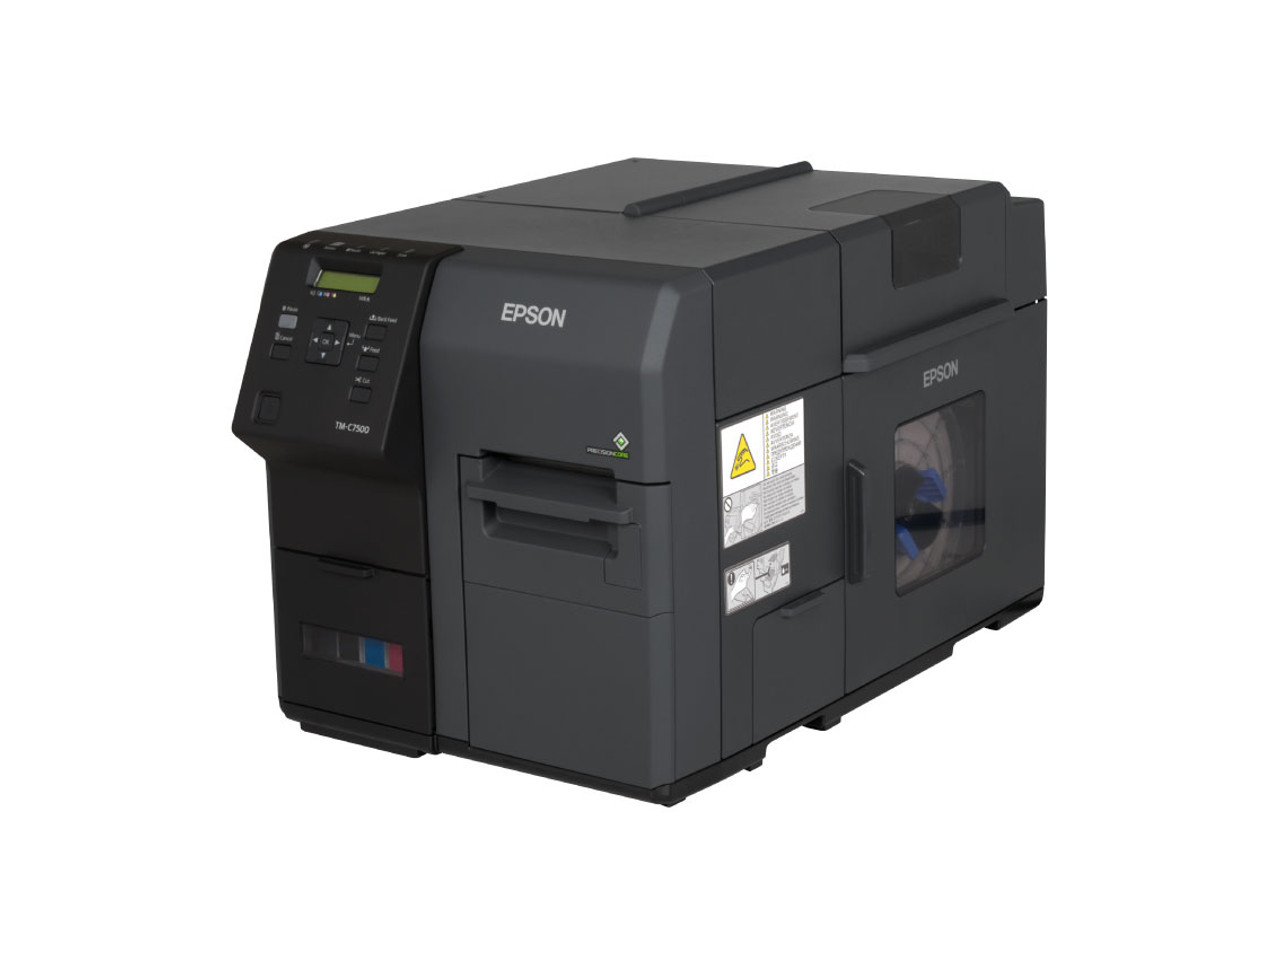 "Epson TM-C7500 color label printer has an integrated label unwinder, accomodating label rolls up to 8""  OD."